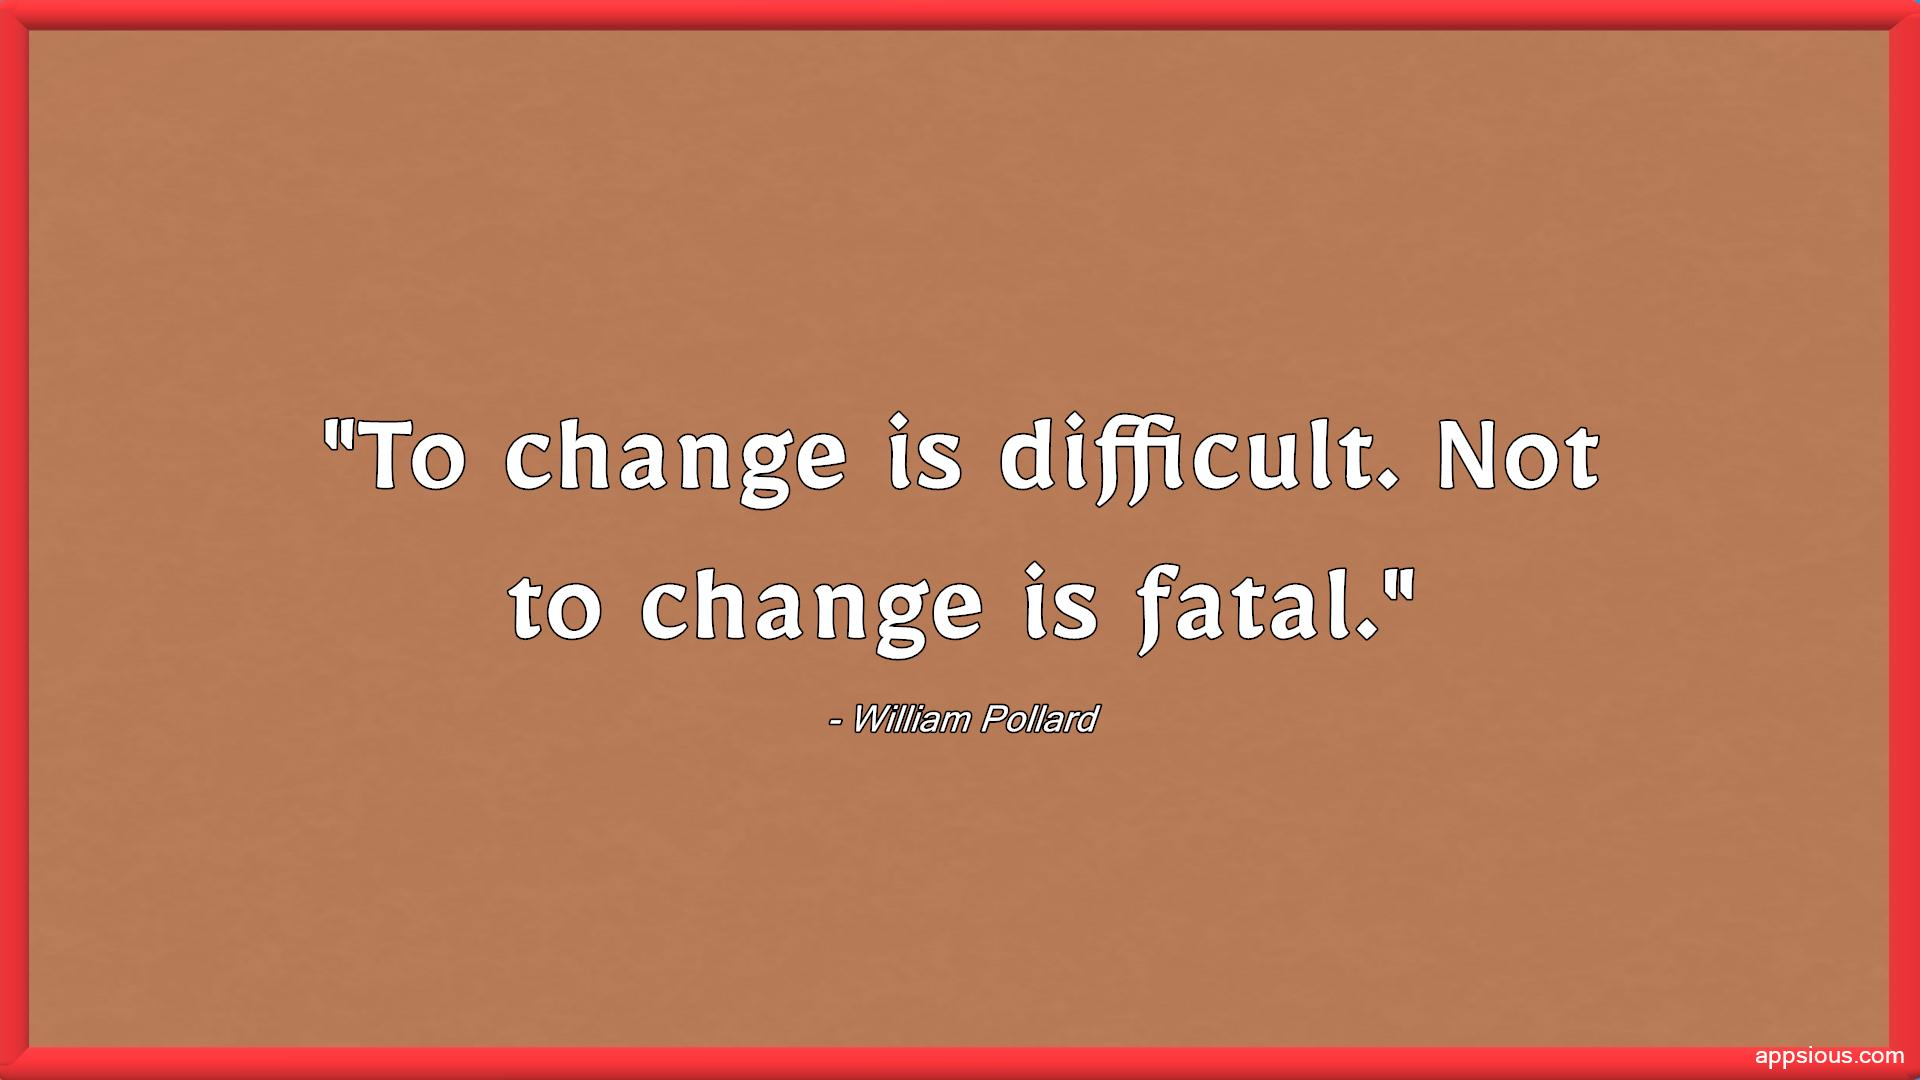 To change is difficult. Not to change is fatal.